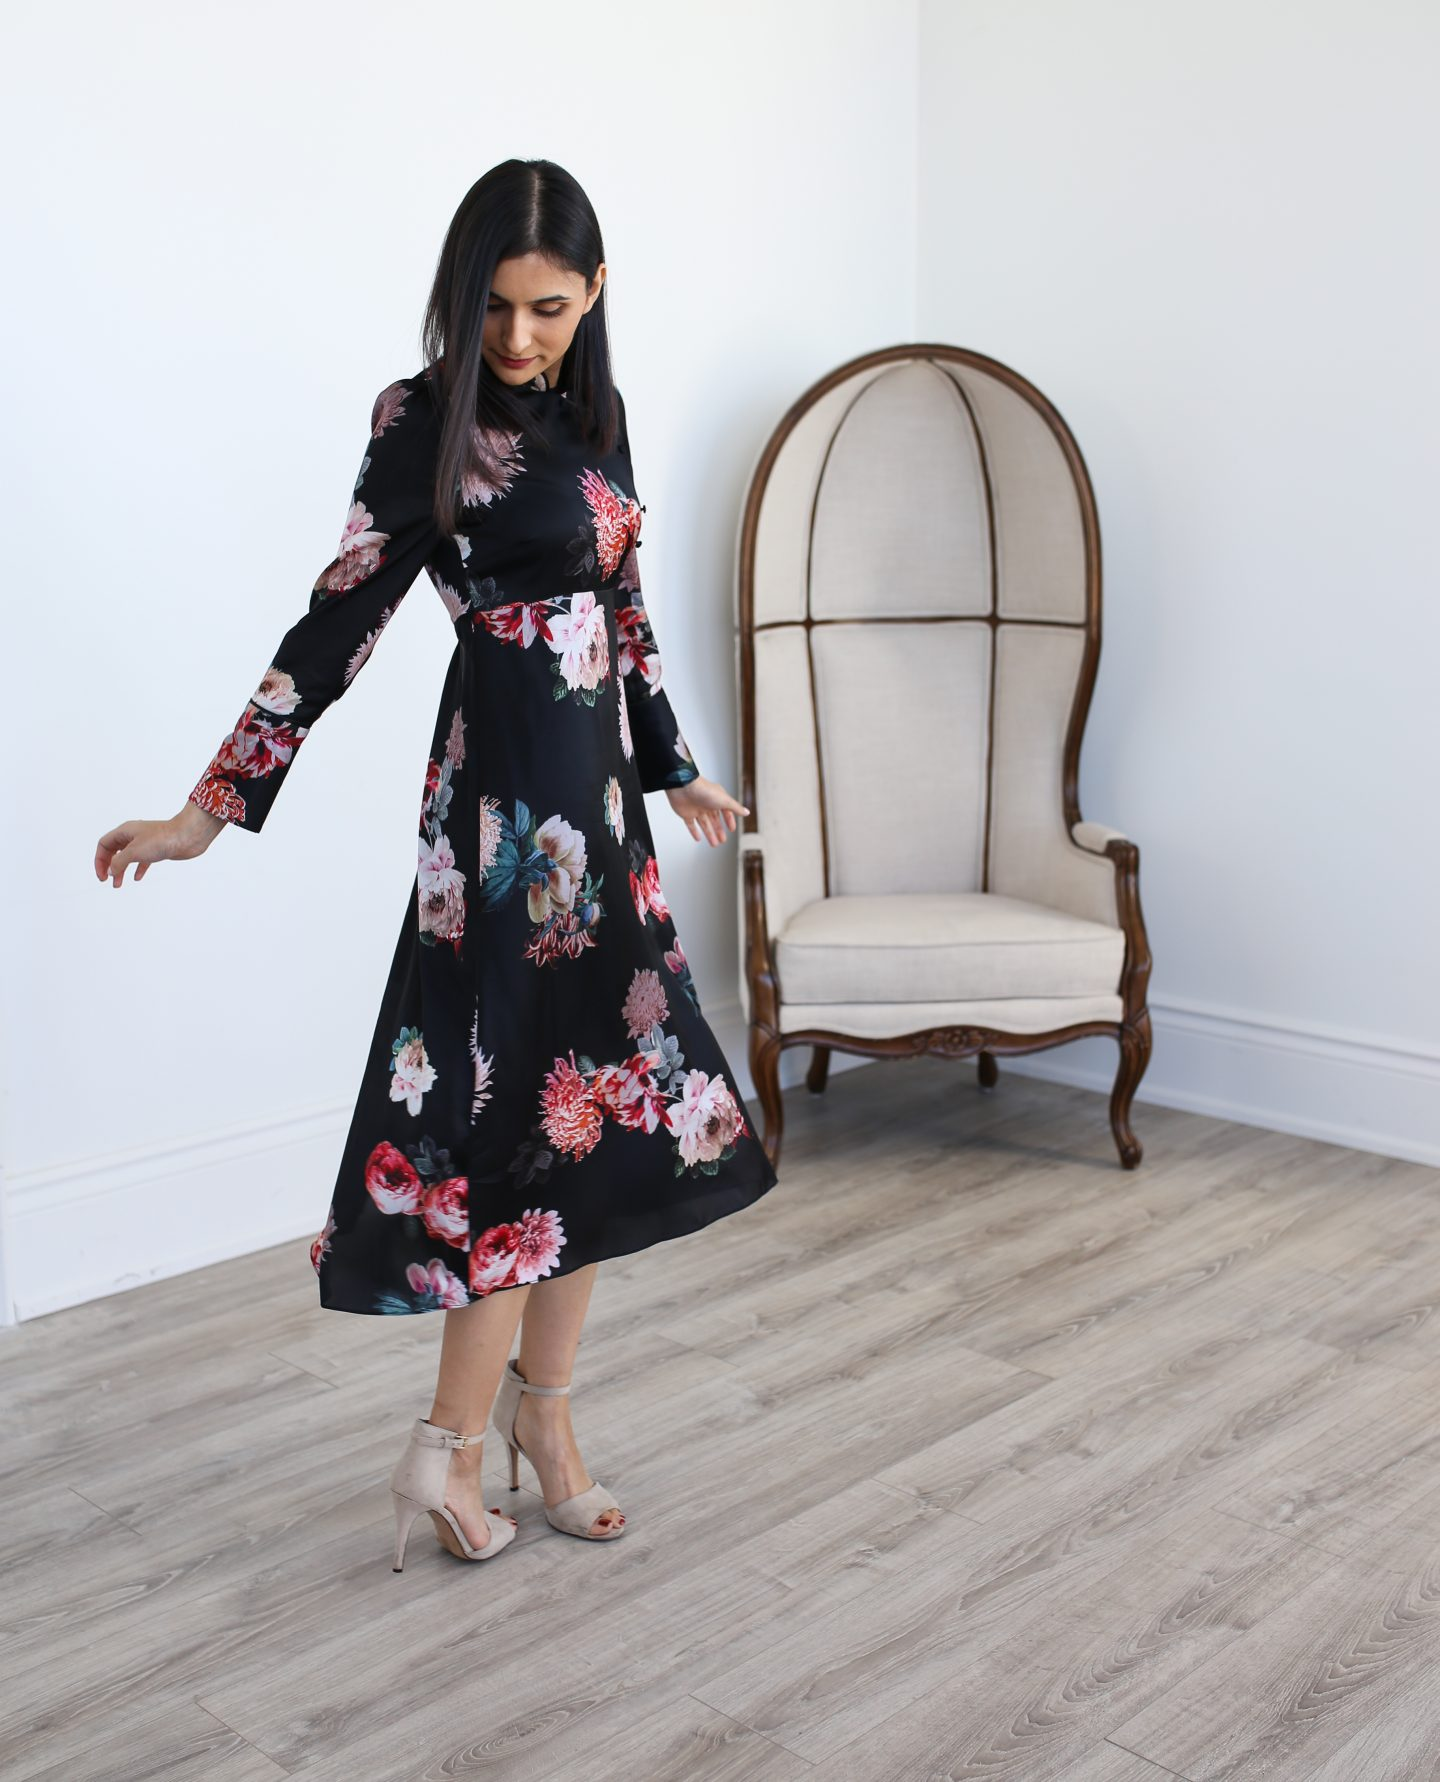 Transitioning Winter Florals Into Spring